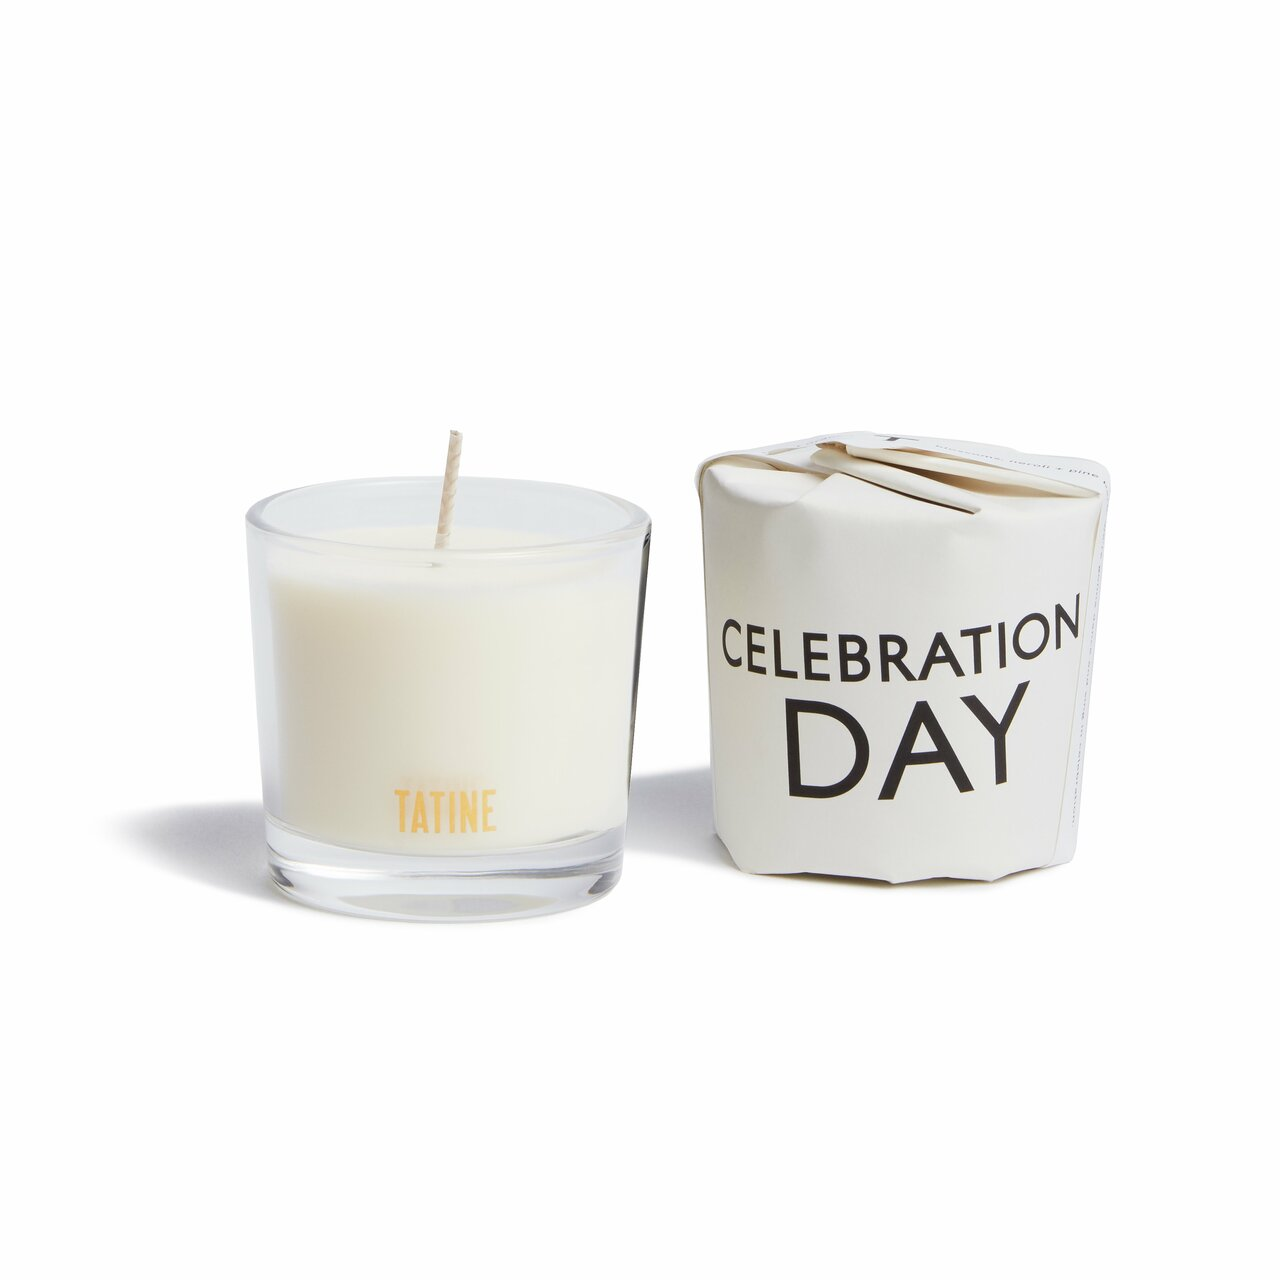 Tatine Tisane Collection- Celebration Day 16 Hour Soy Candle